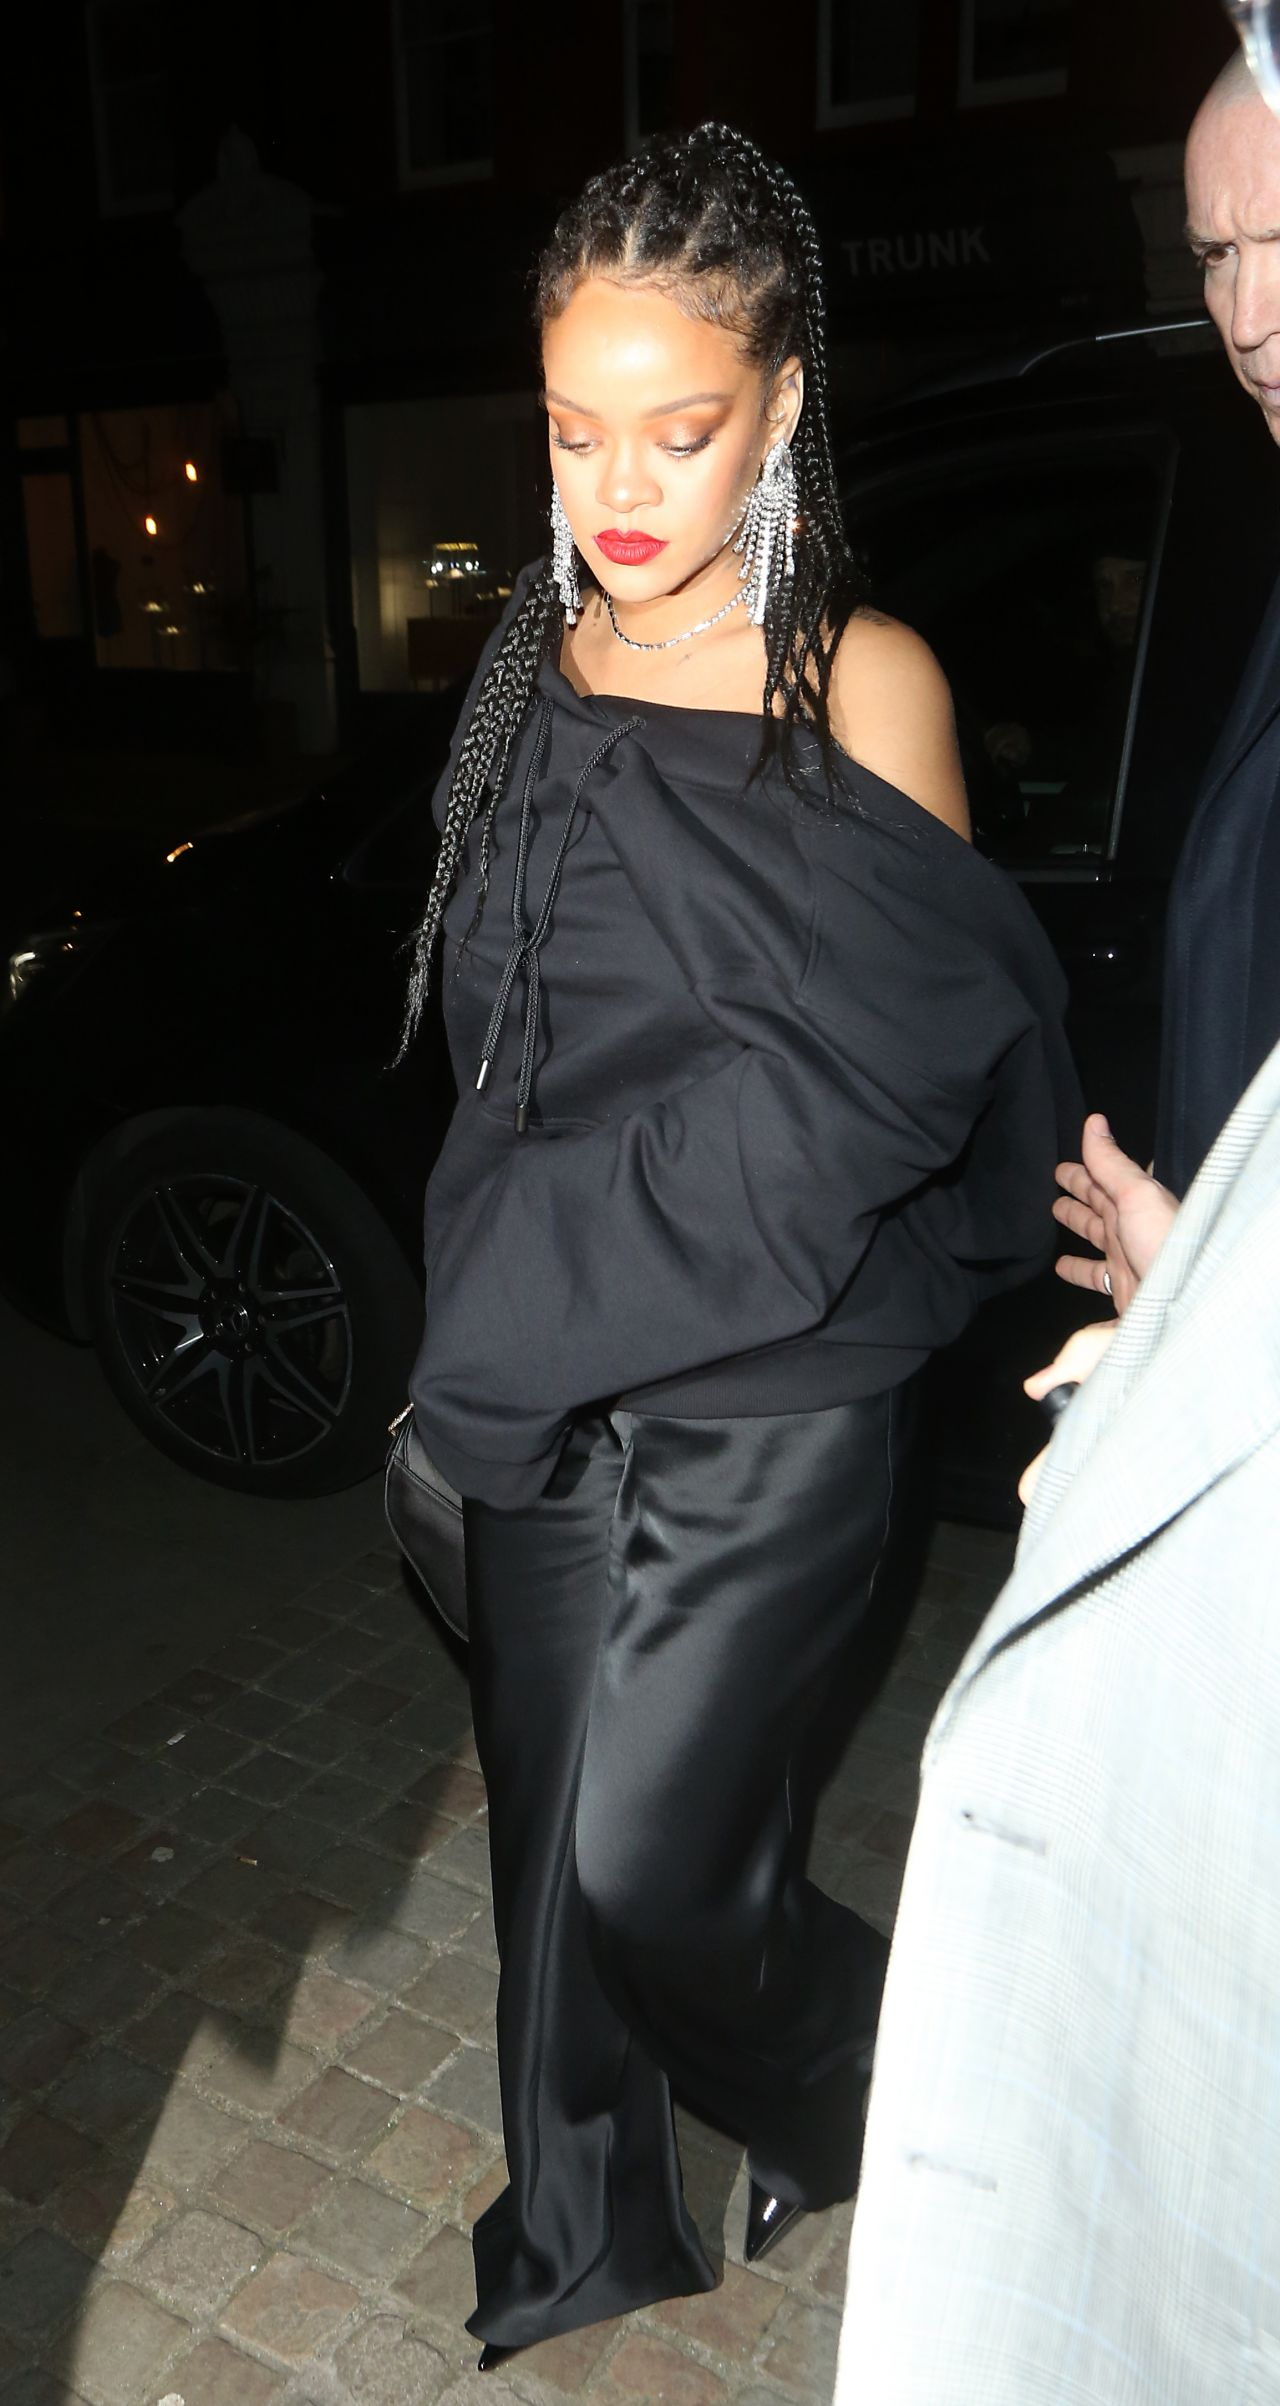 rihanna-in-fenty-british-vogue-and-tiffany-co-celebrate-fashion-film-party